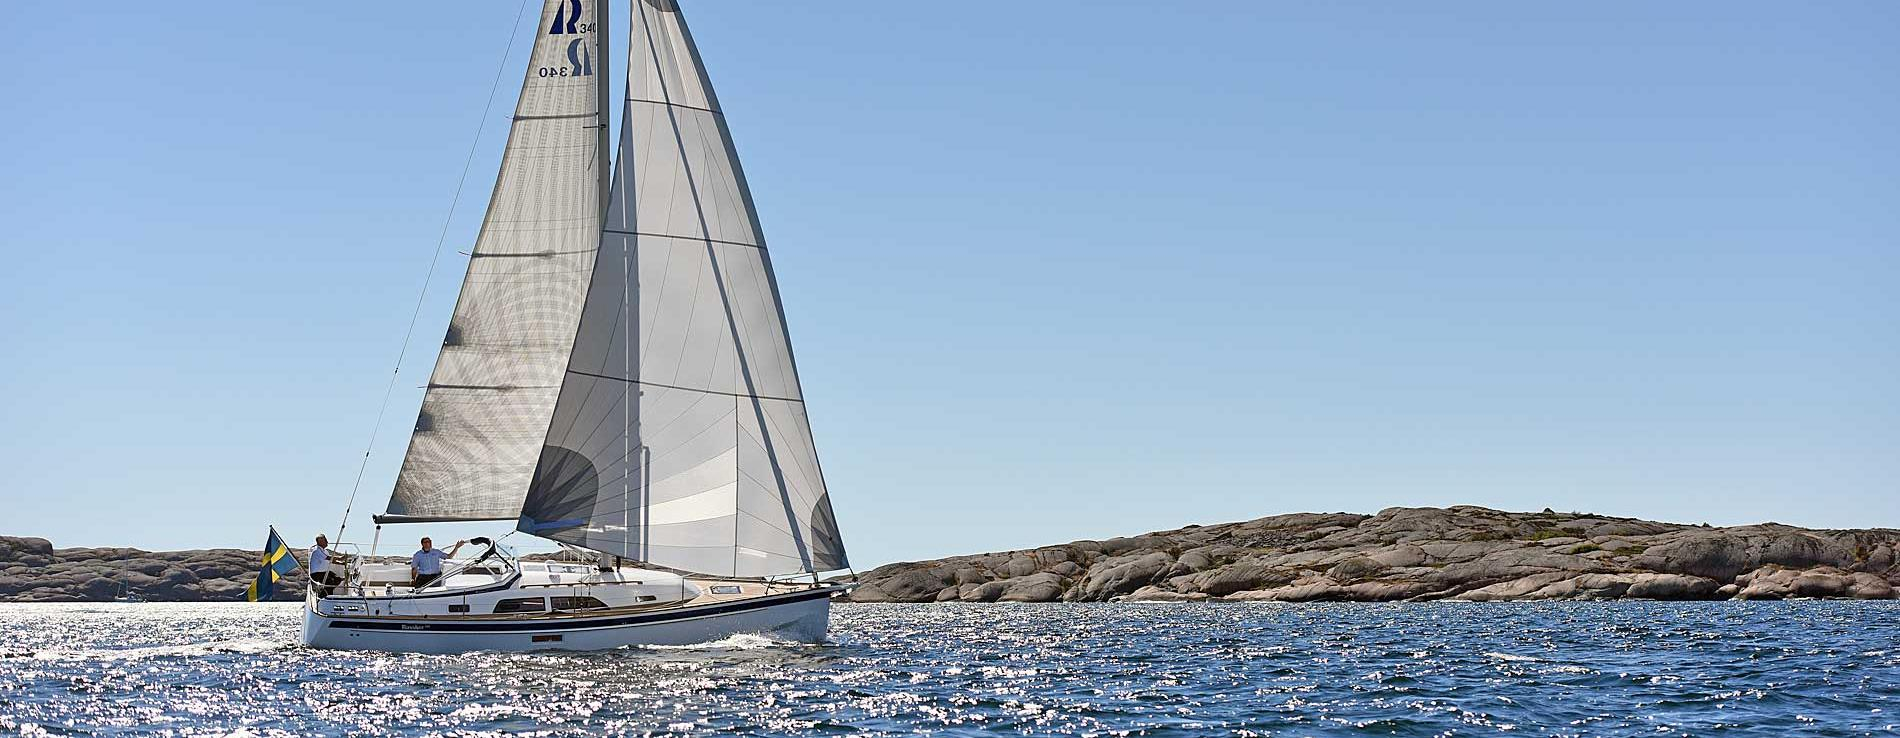 Hallberg-Rassy 340 in the Swedish archipelago